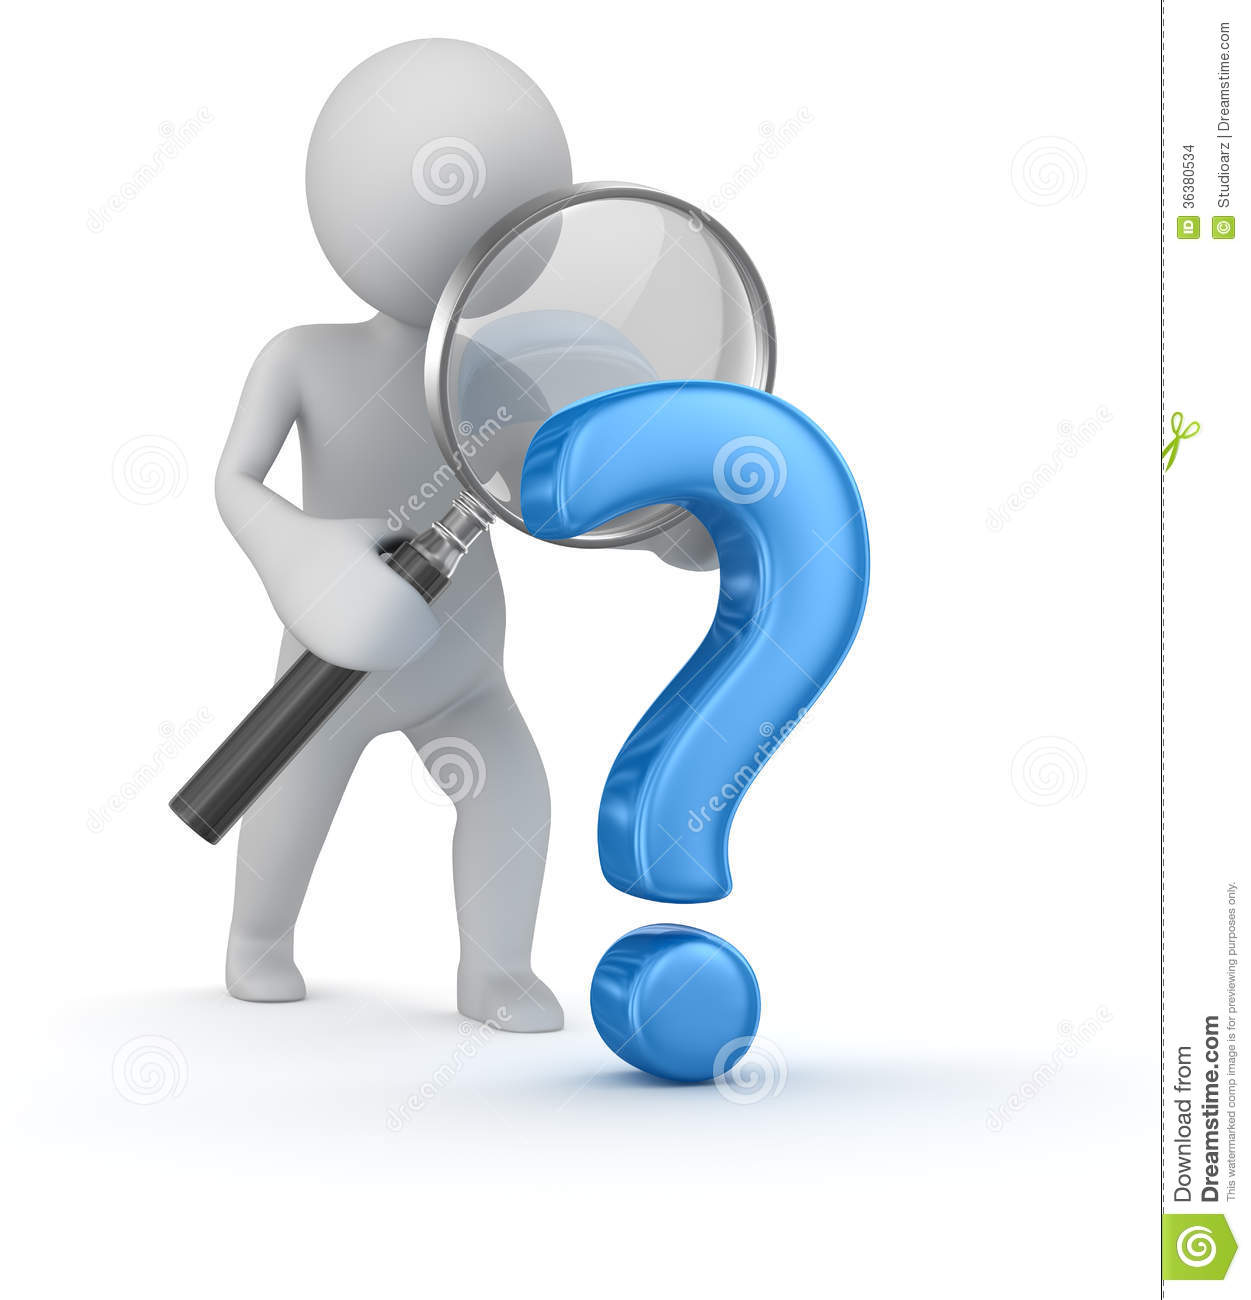 Question Mark Search Stock Images - Image: 36380534: www.dreamstime.com/stock-images-question-mark-search-computer...